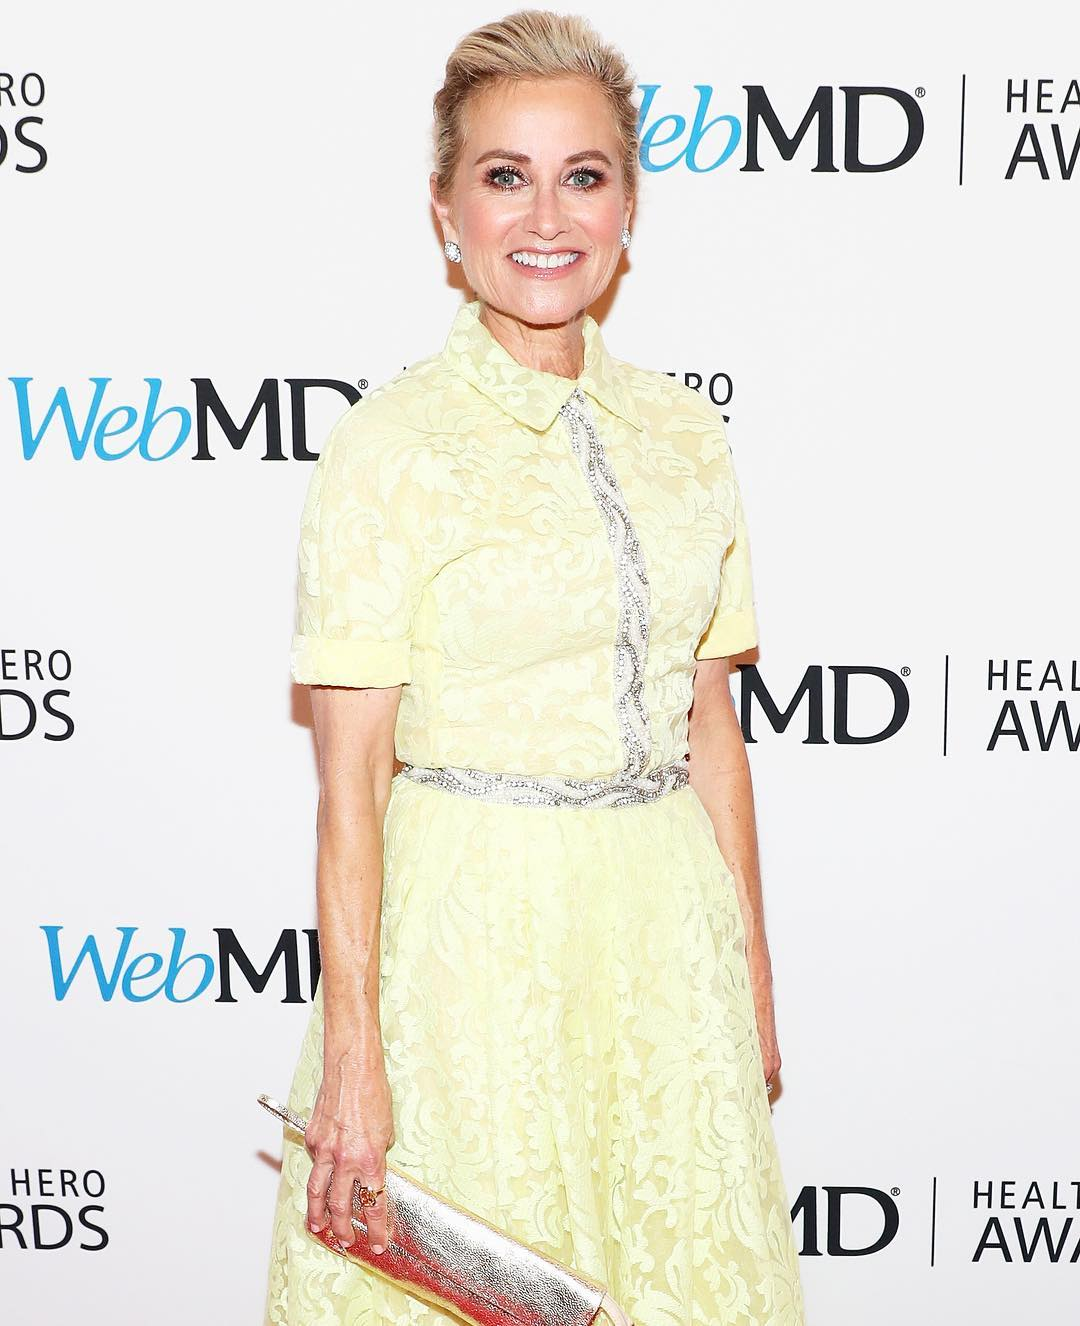 Maureen McCormick is wearing light yellow dress holding a purse on her hand